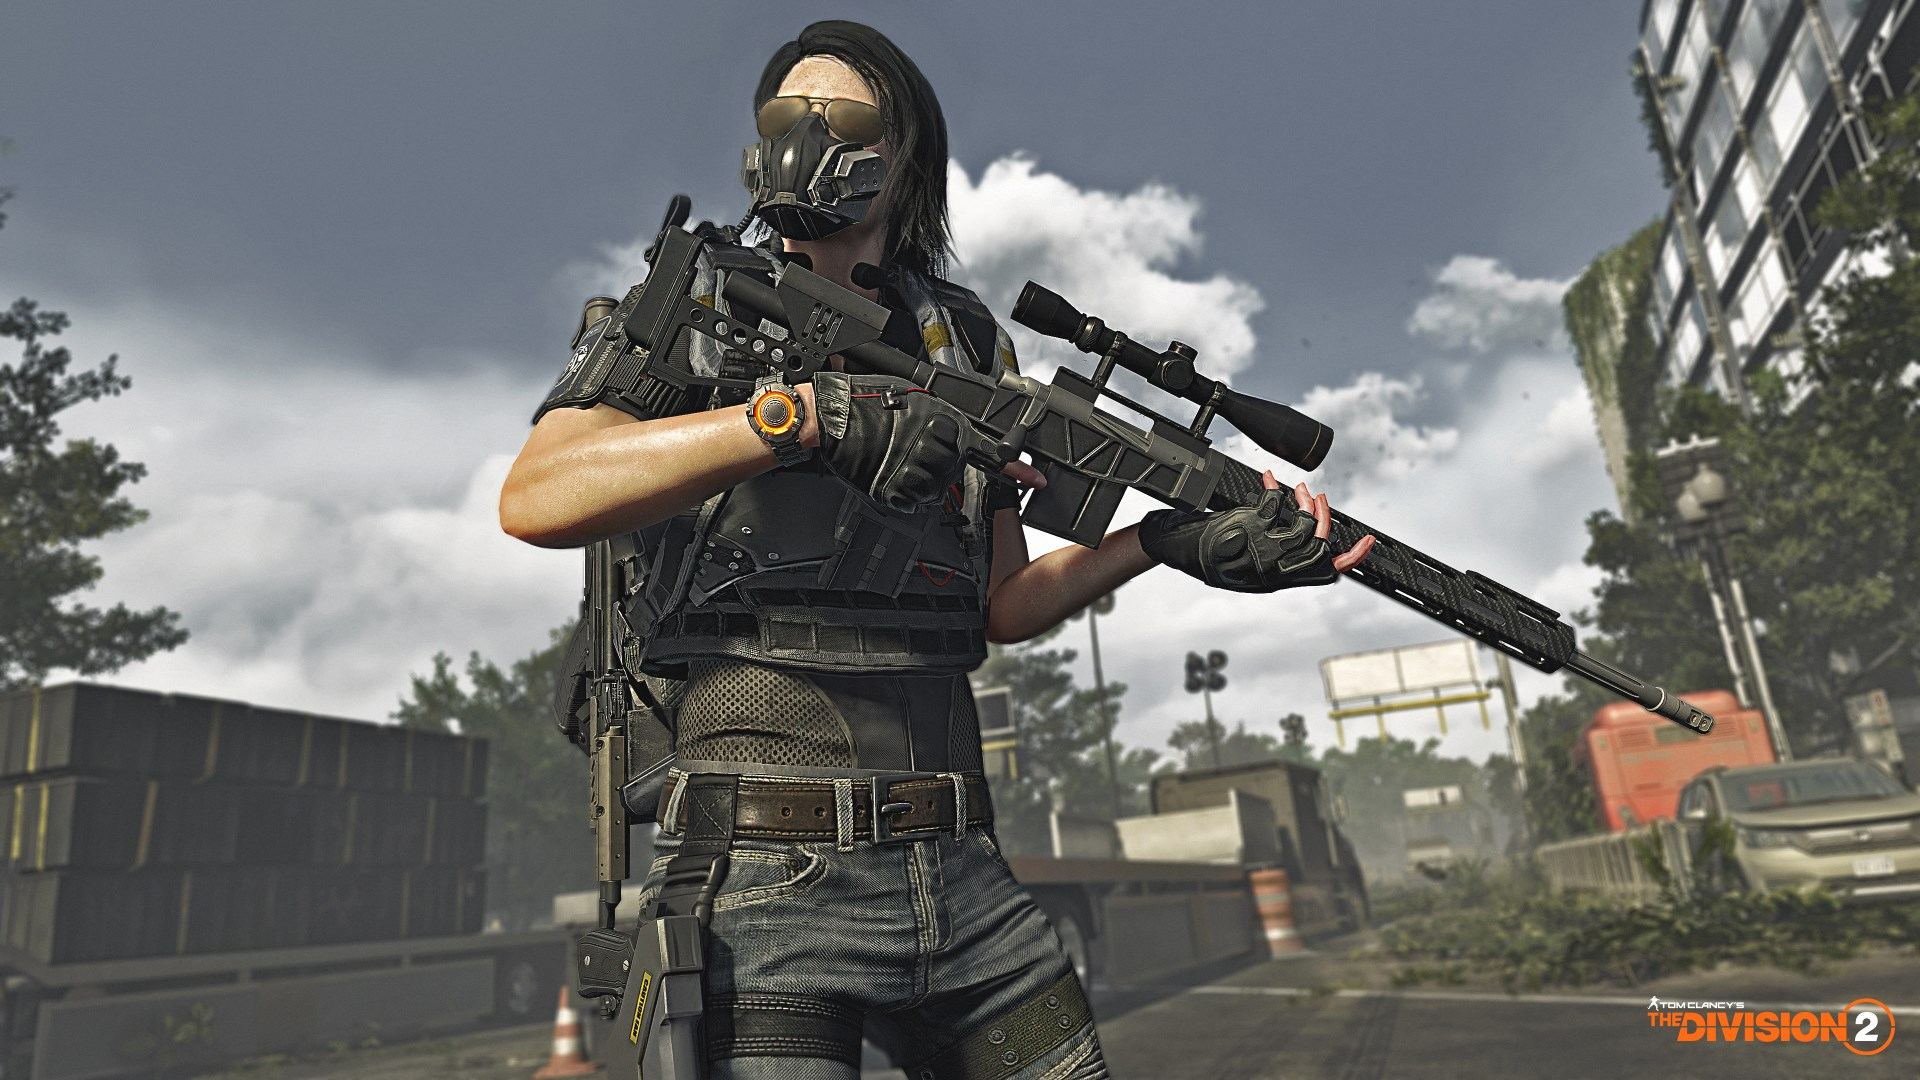 The Division 2 – Tips & Tricks for Beginners (Fast Levels) – Things I Wish I Knew When I Started